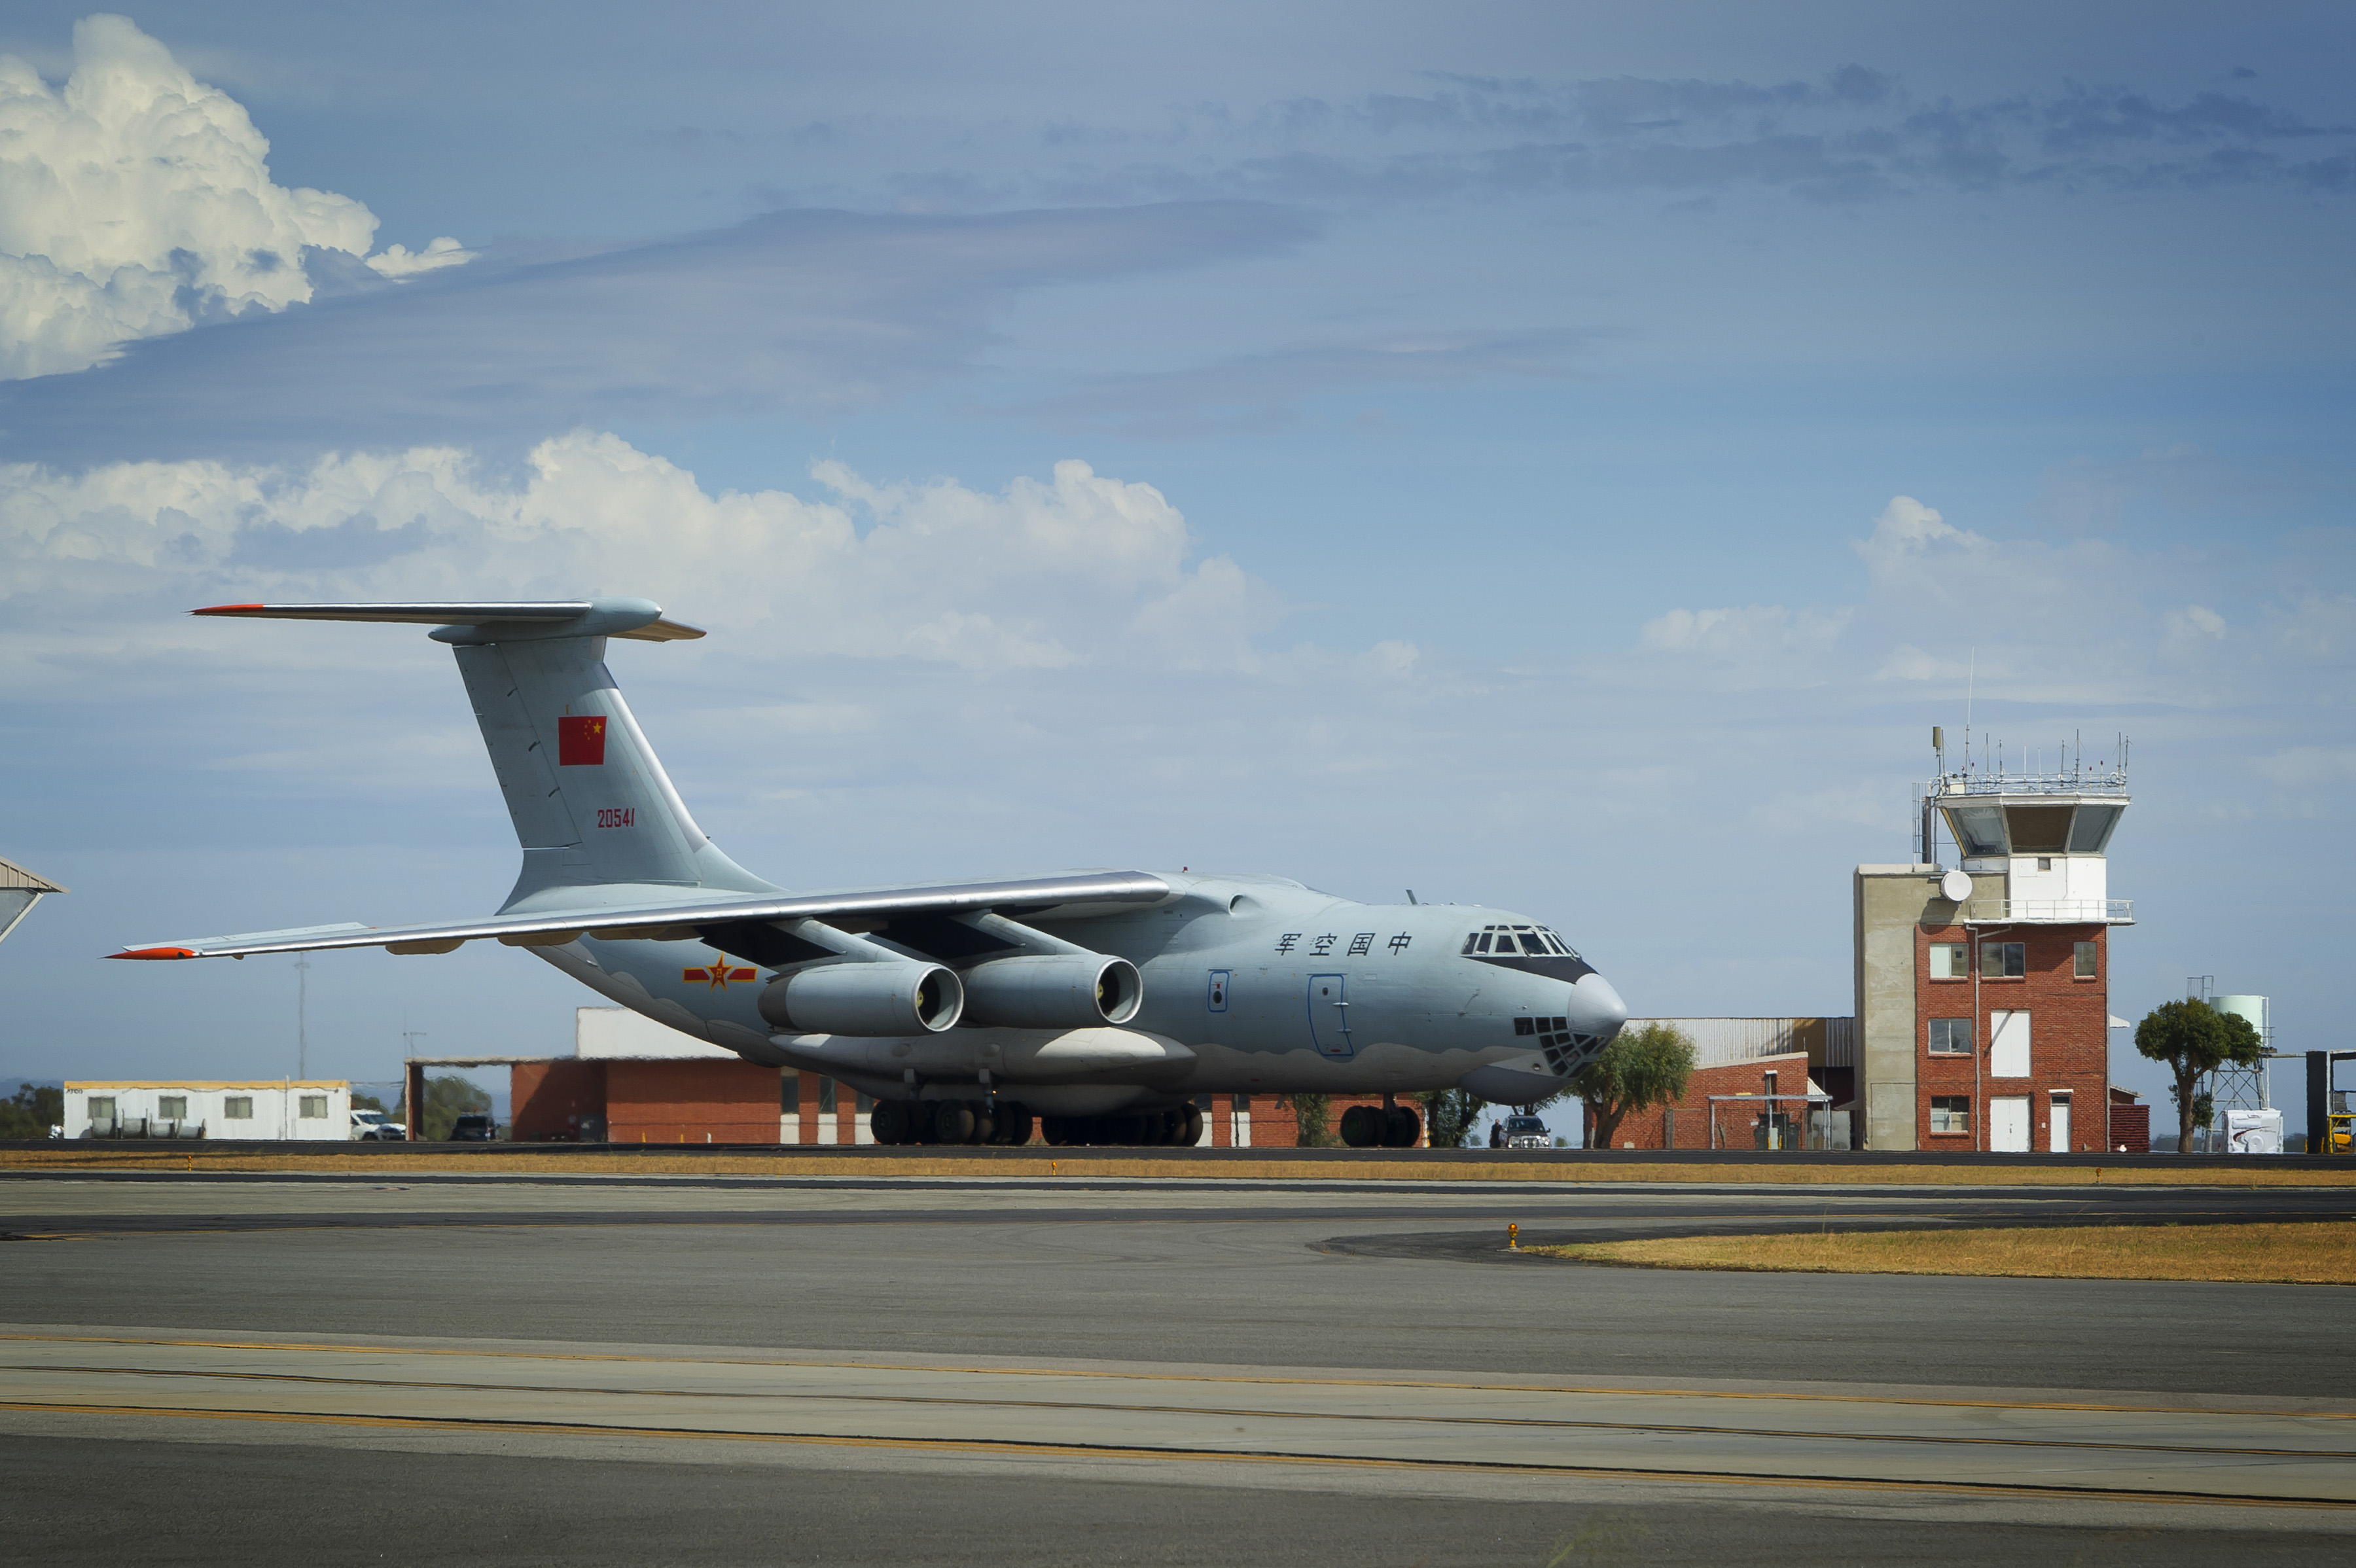 A Chinese Ilyushin Il-76 taxies into position at the Royal Australia Air Force Base Pearce in Western Australia. (Courtesy of the Australian Defence Department)